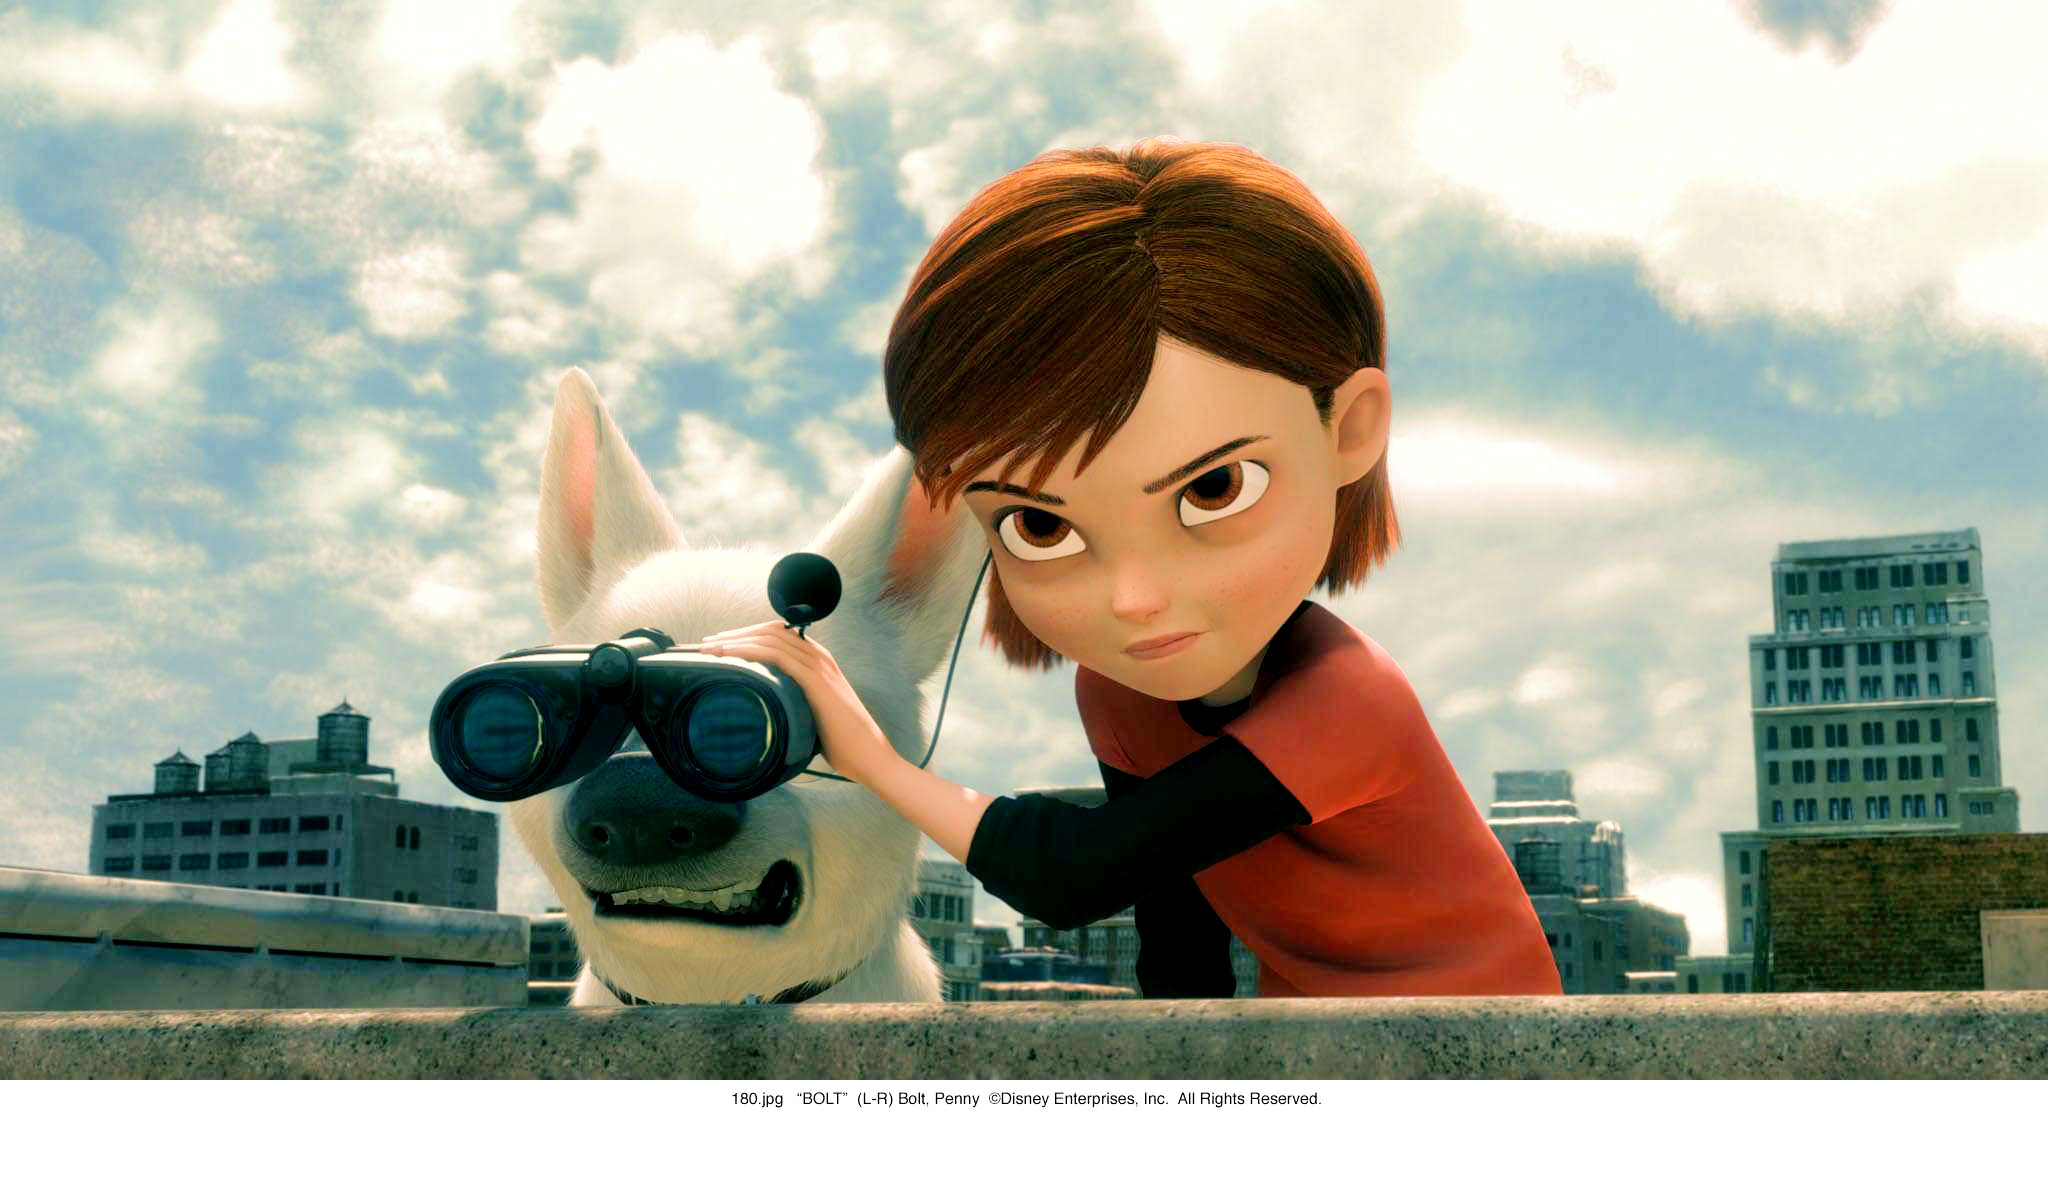 A scene from Walt Disney Pictures' Bolt (2008)